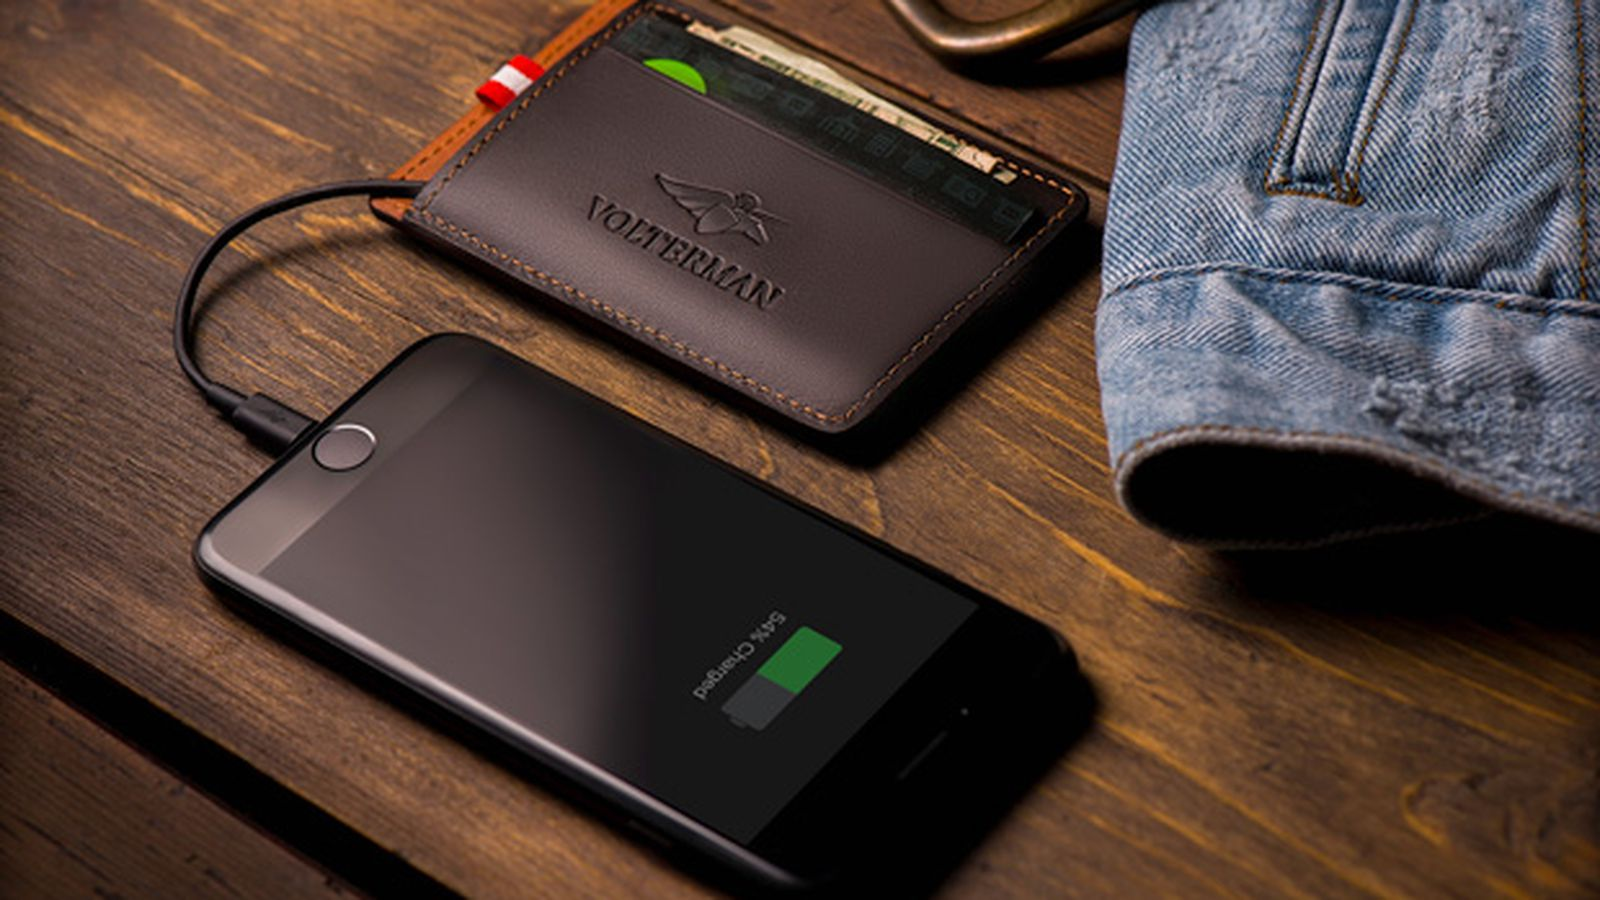 This smart wallet has a builtin camera for catching